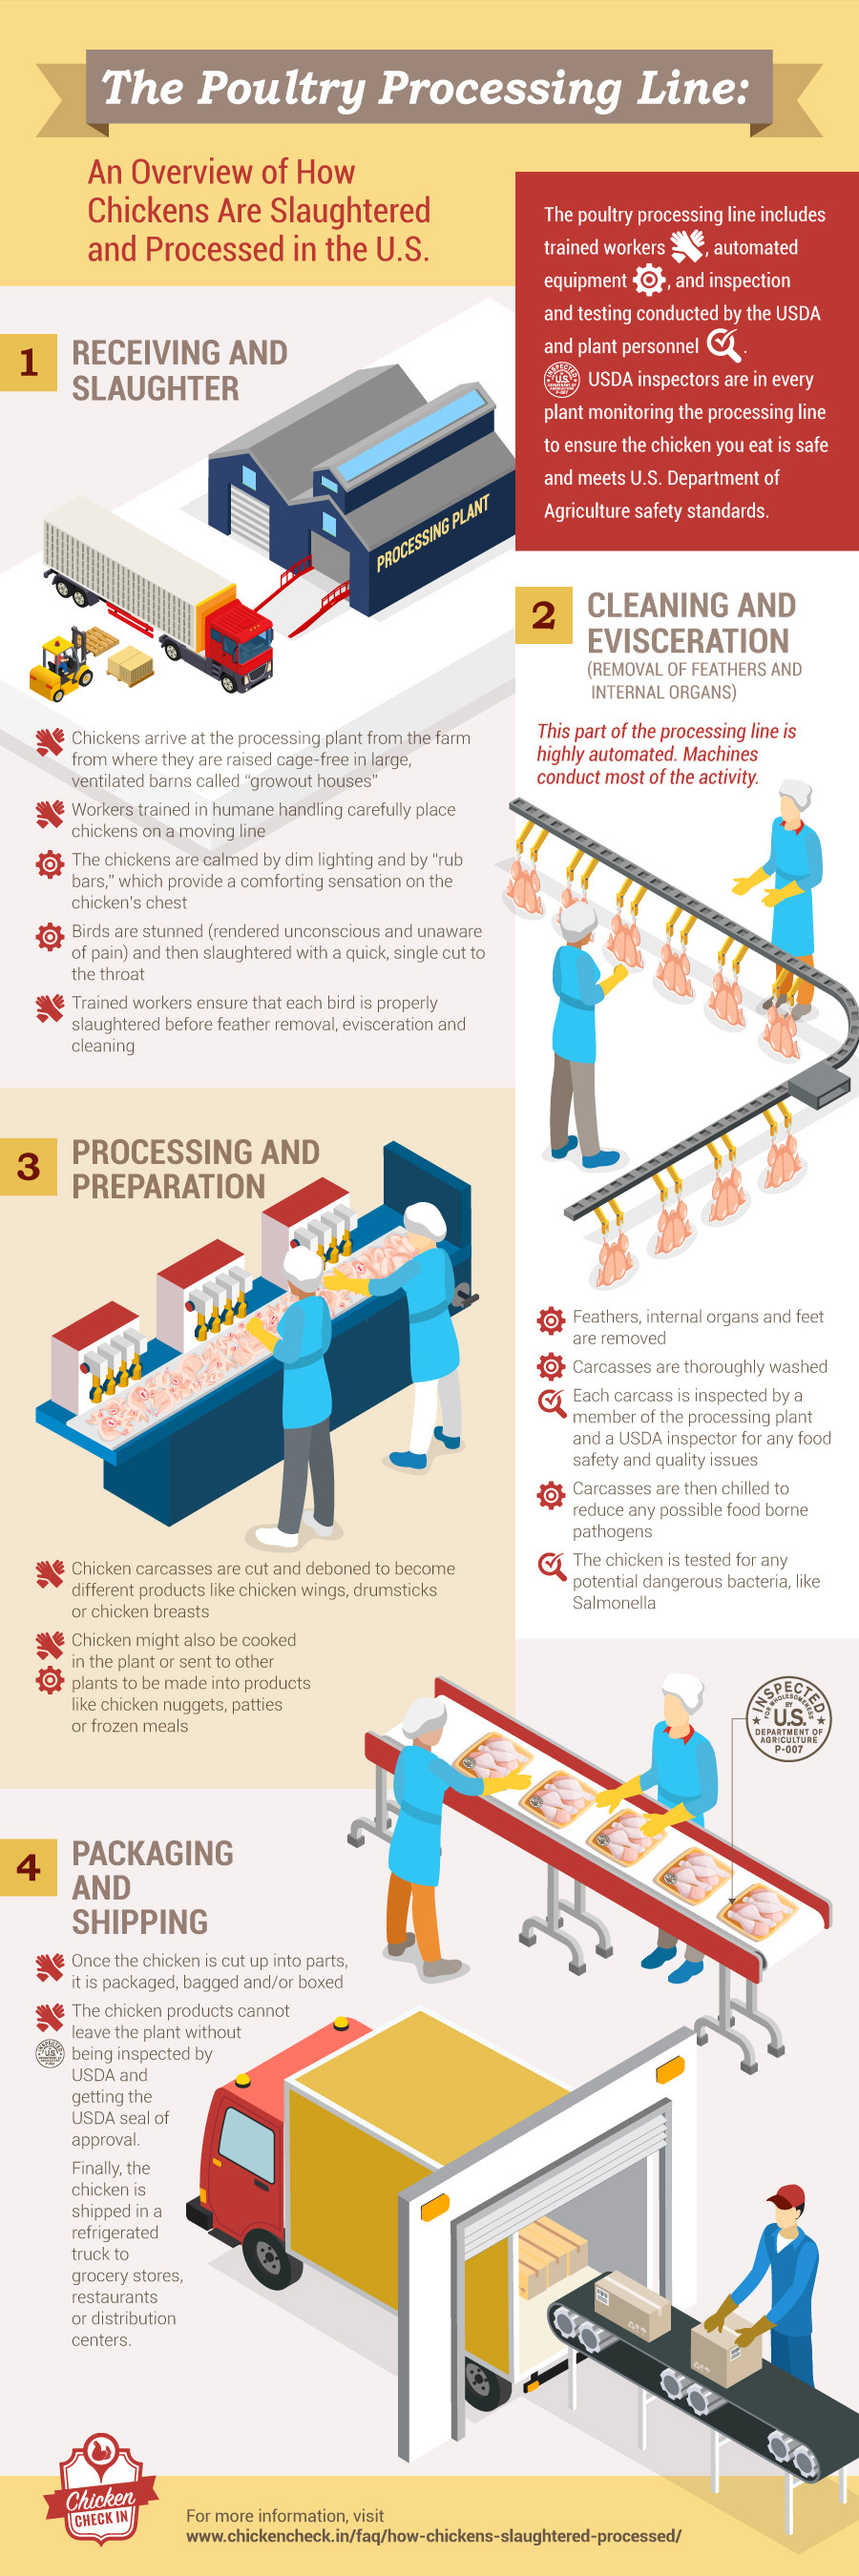 The Poultry Processing Line (Infographic)